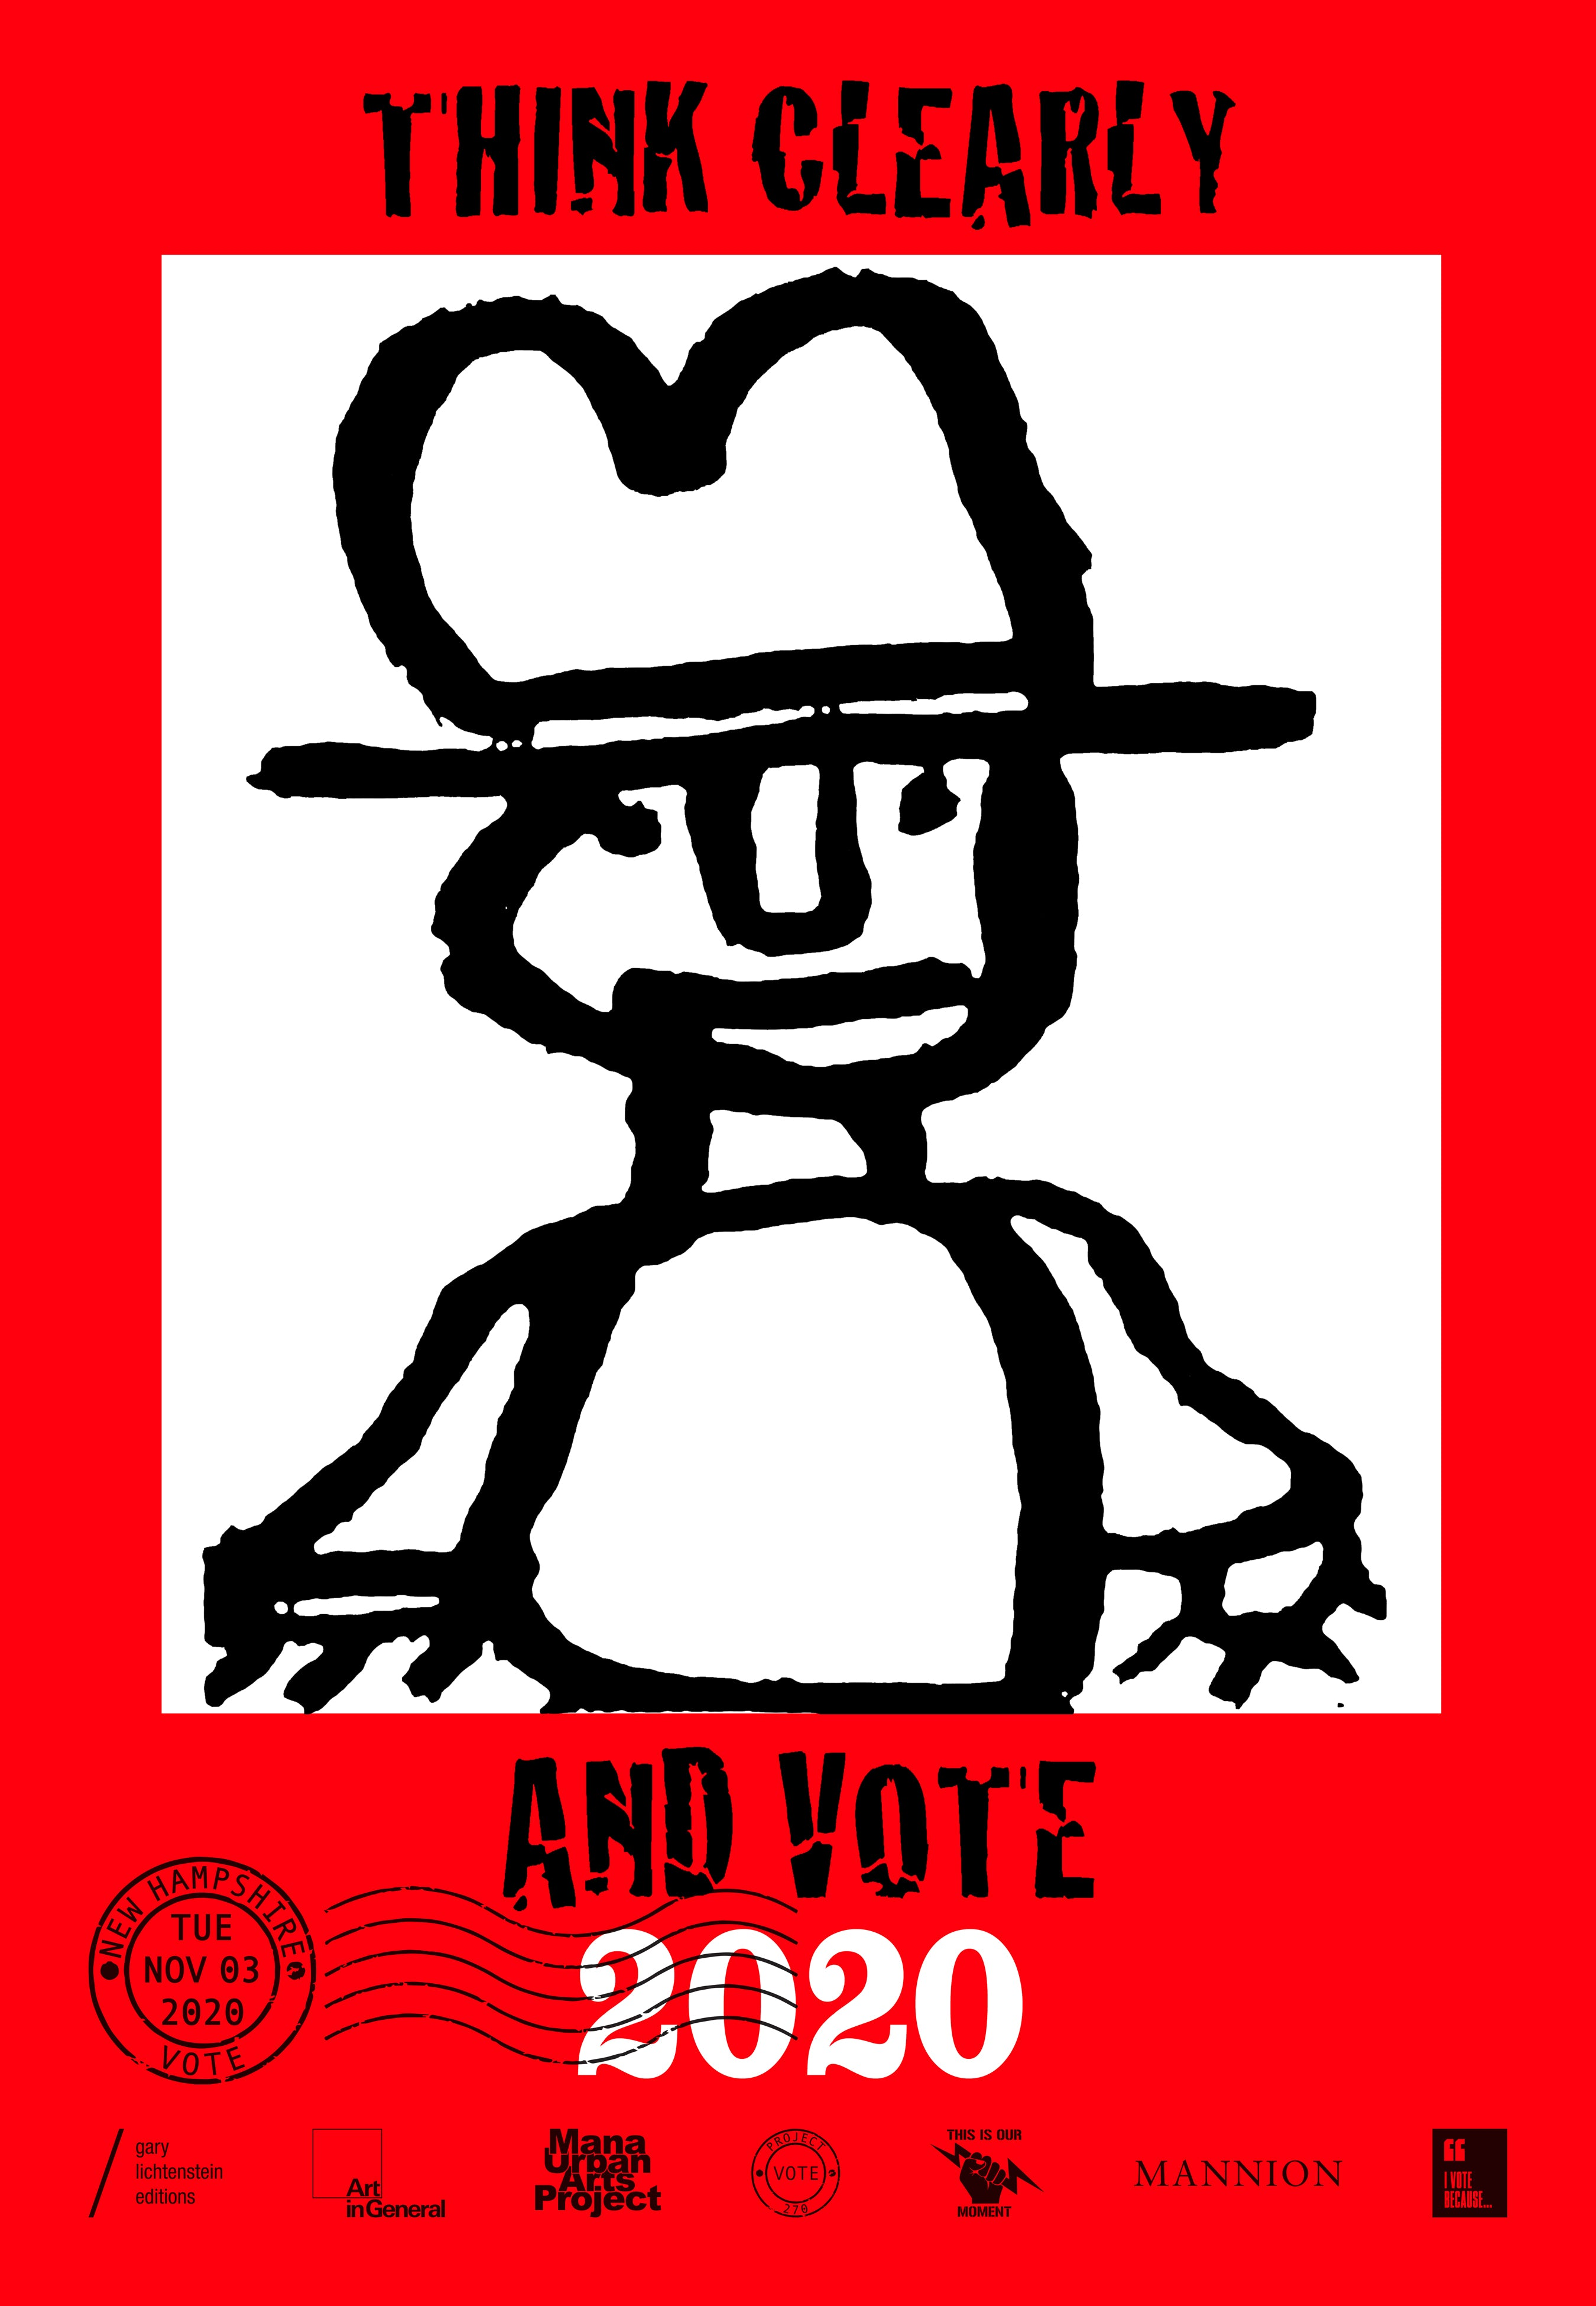 New Hampshire Get Out The Vote Poster by Phil Demise Smith